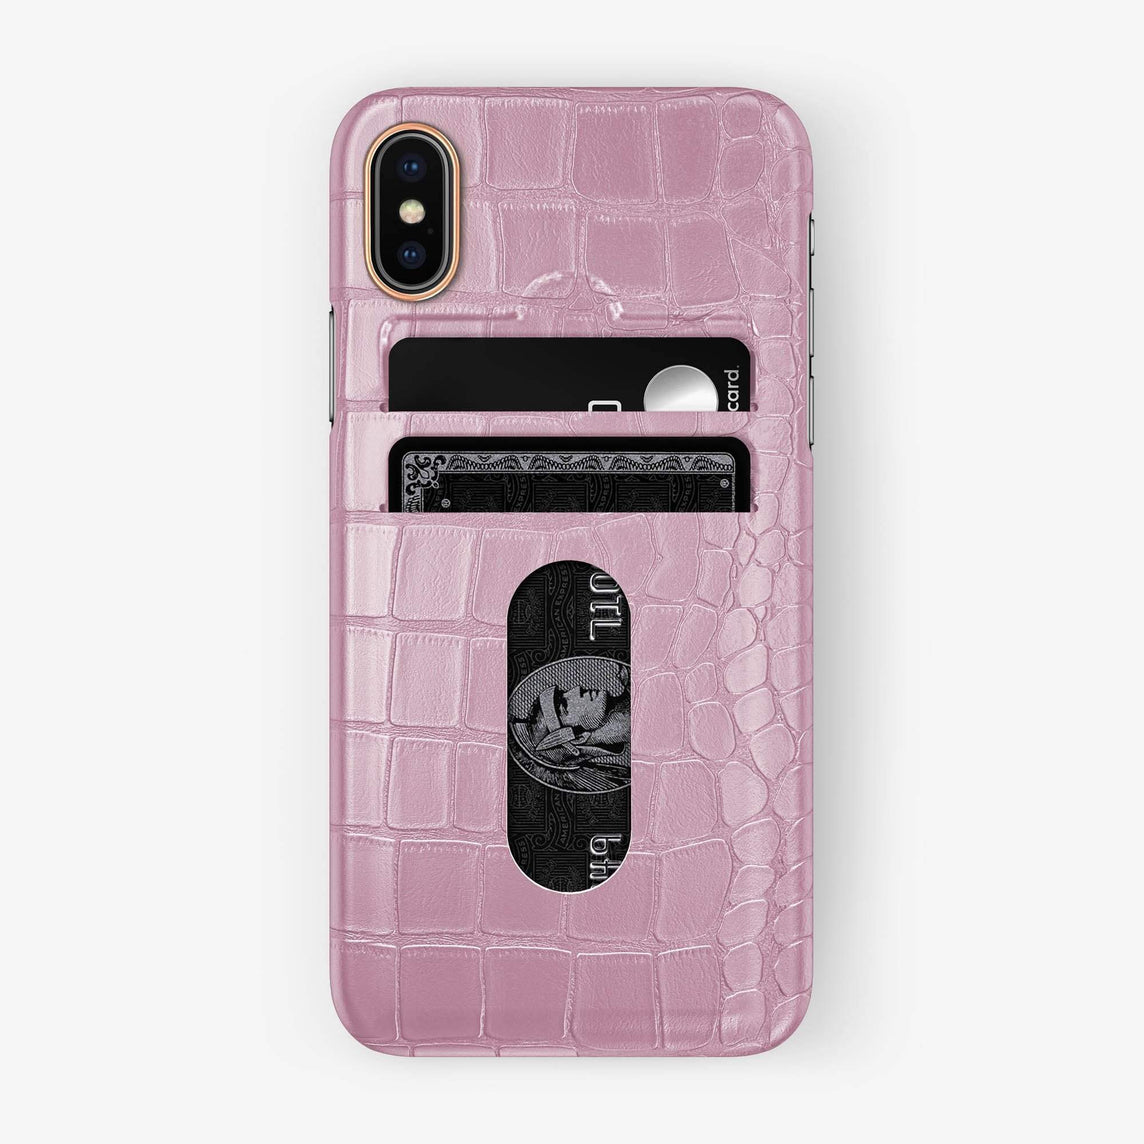 Alligator Card Holder Case iPhone Xs Max | Pink - Rose Gold - Hadoro